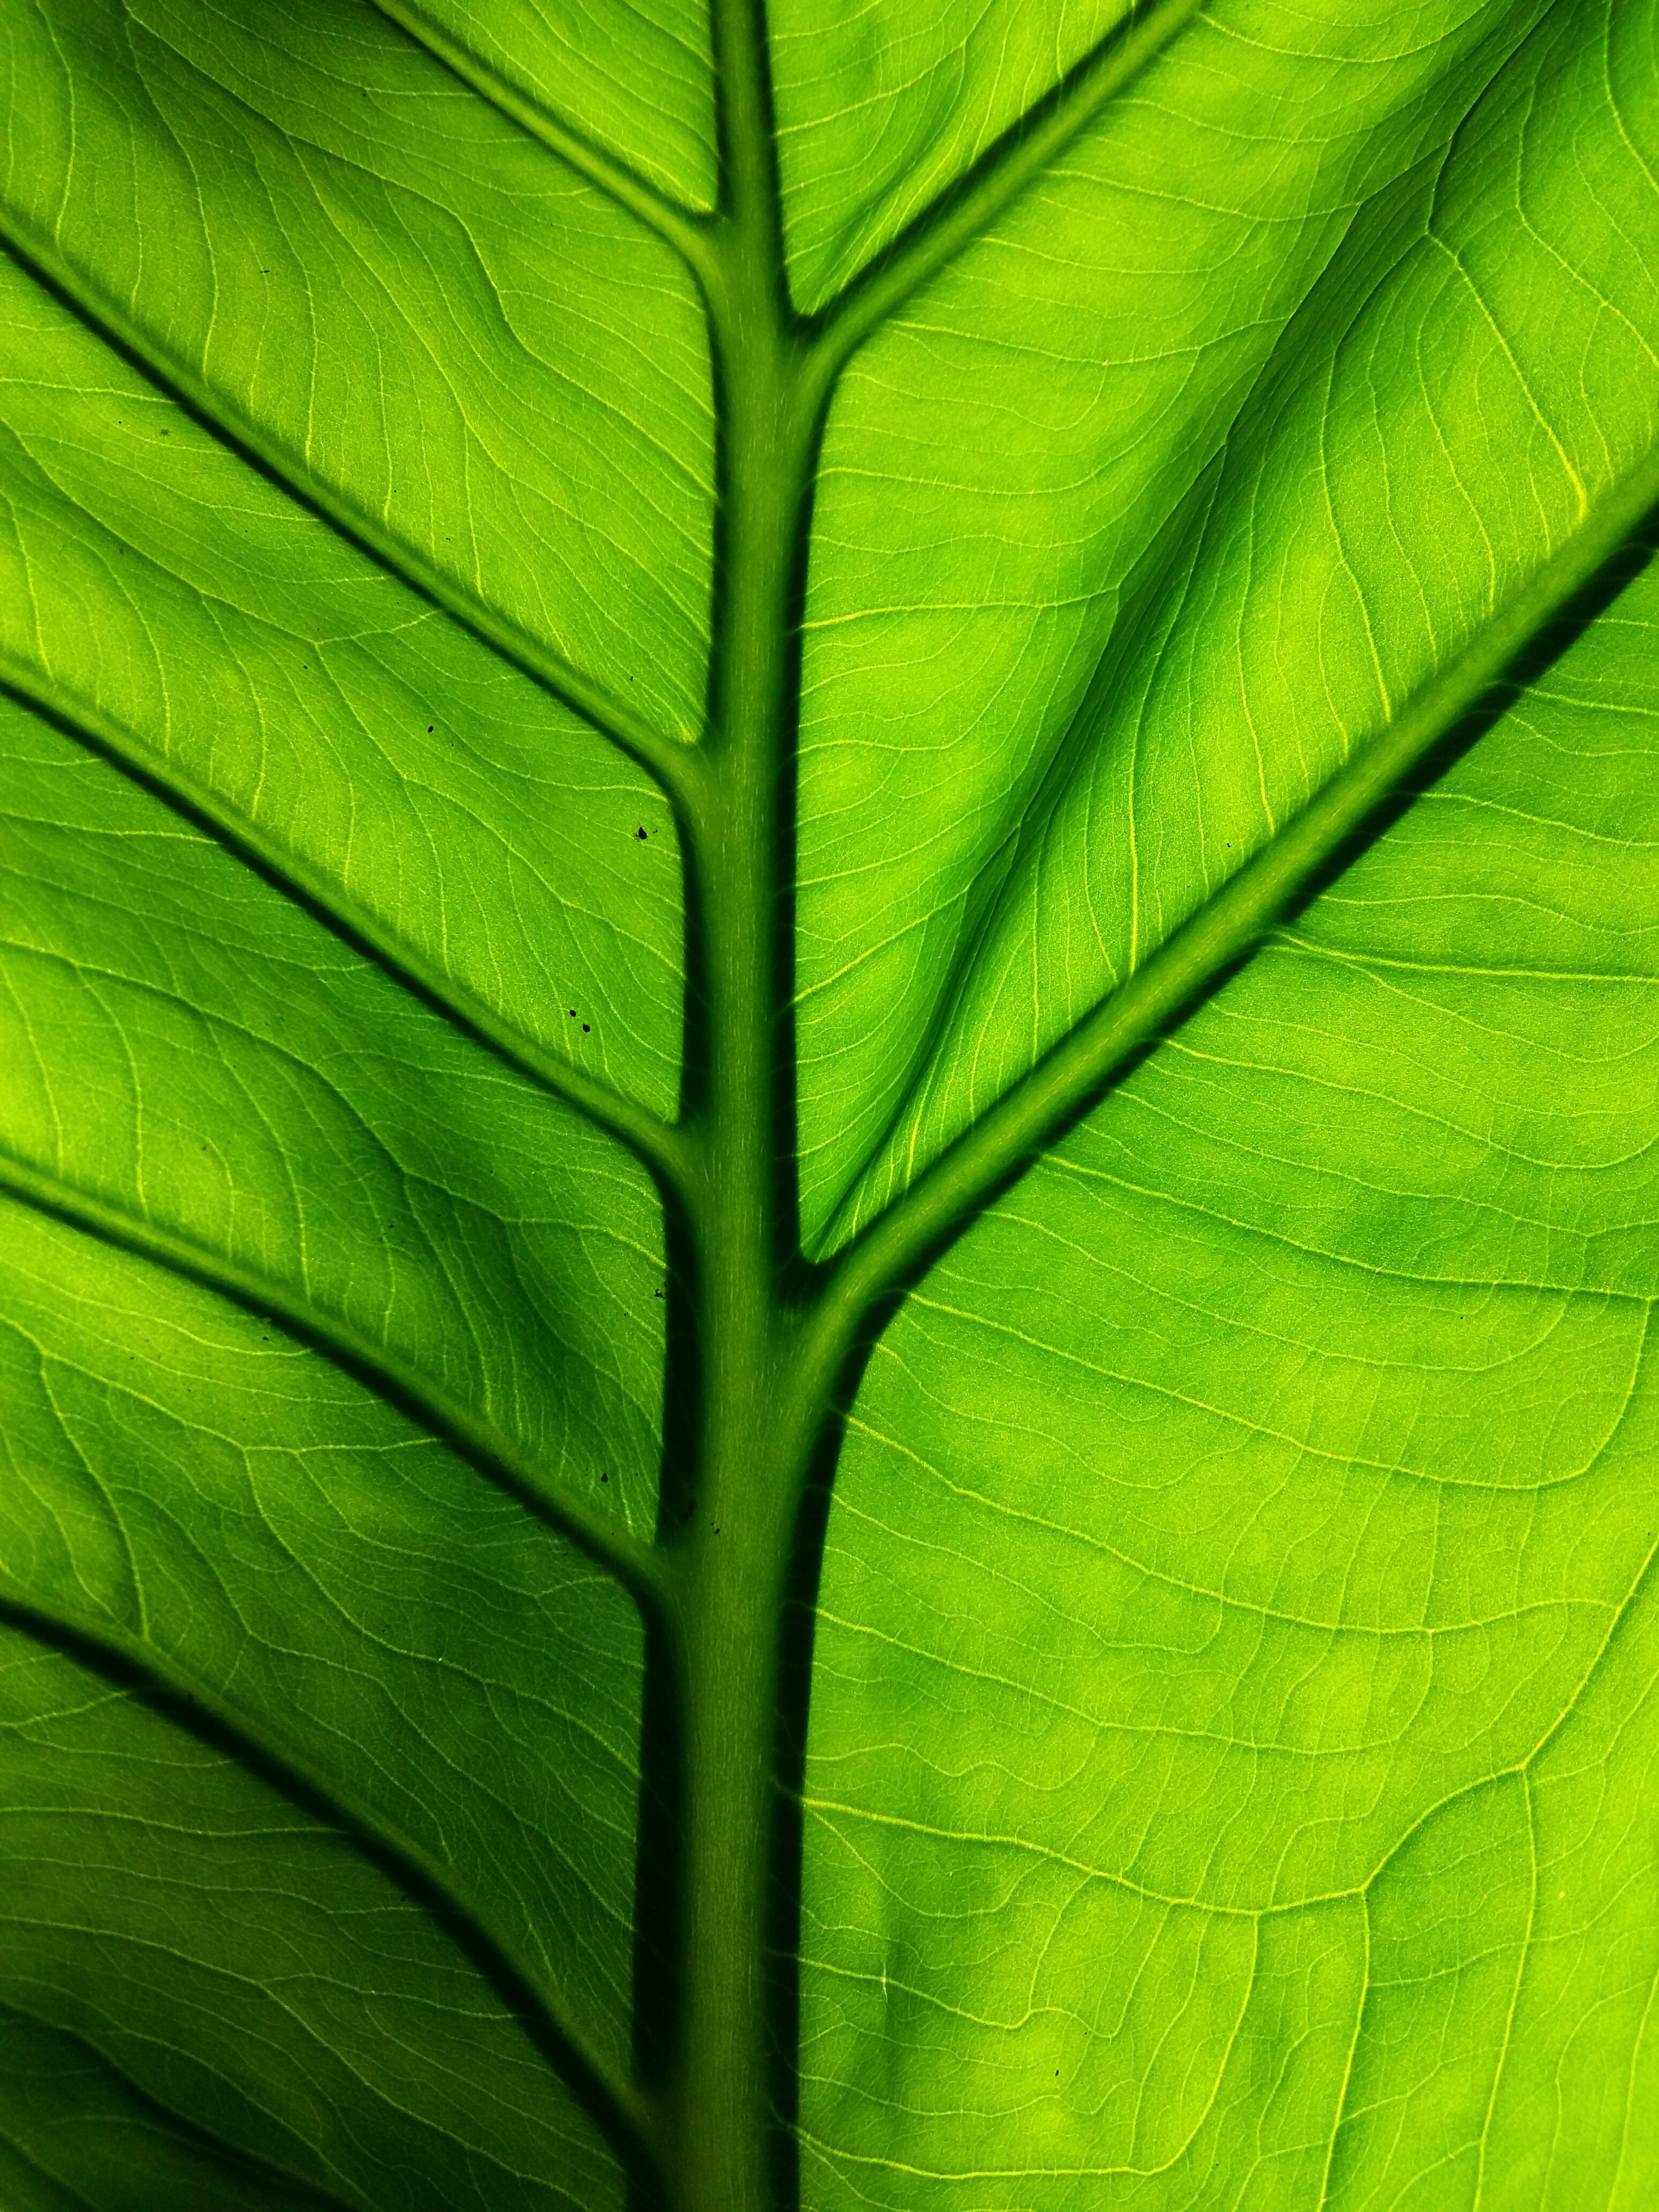 green color, full frame, backgrounds, leaf, leaf vein, close-up, pattern, textured, green, growth, natural pattern, extreme close-up, detail, macro, nature, no people, plant, indoors, day, abstract